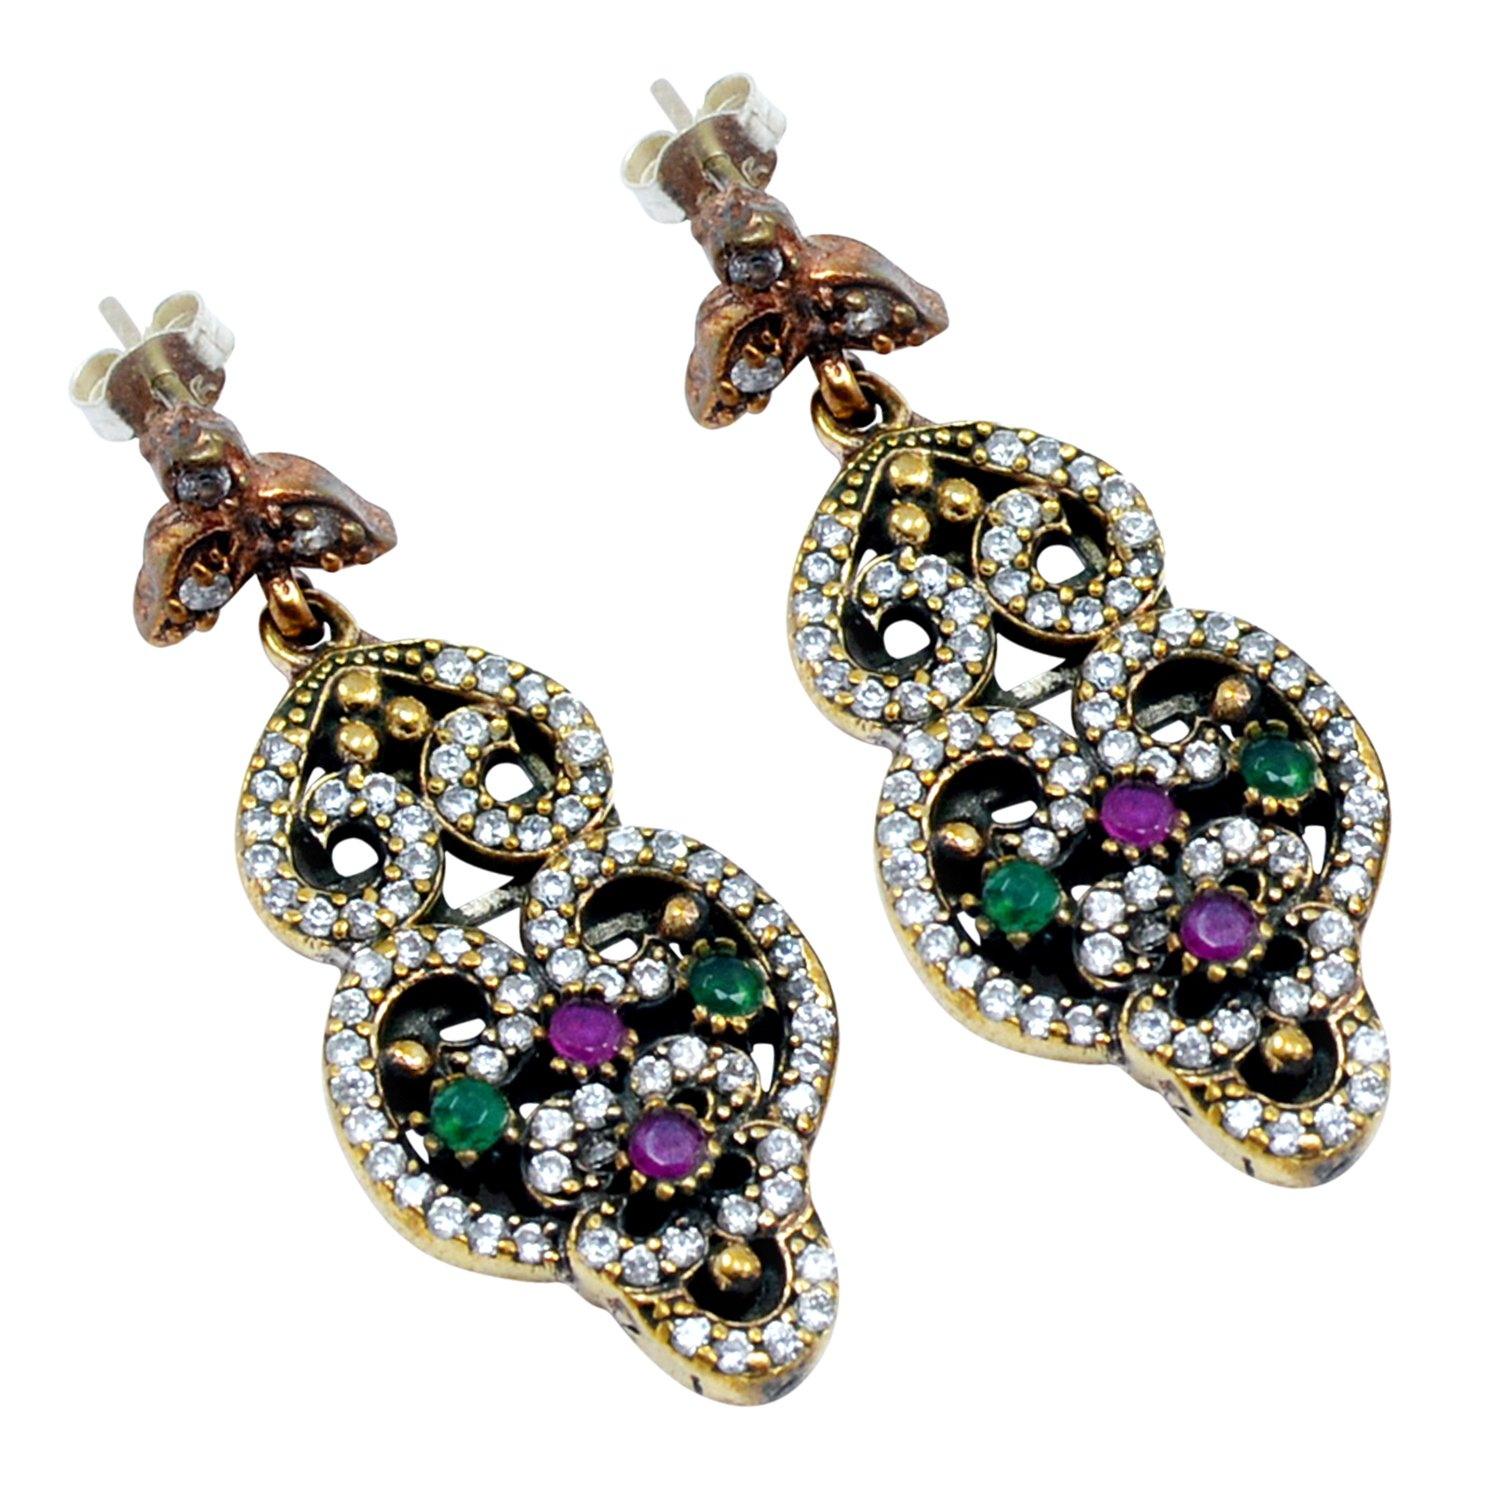 Ruby /& Topaz 925 Sterling Silver With Bronze Drop /& Dangle Turkish Earring PG-104533 Lab Saamarth Impex Emerald